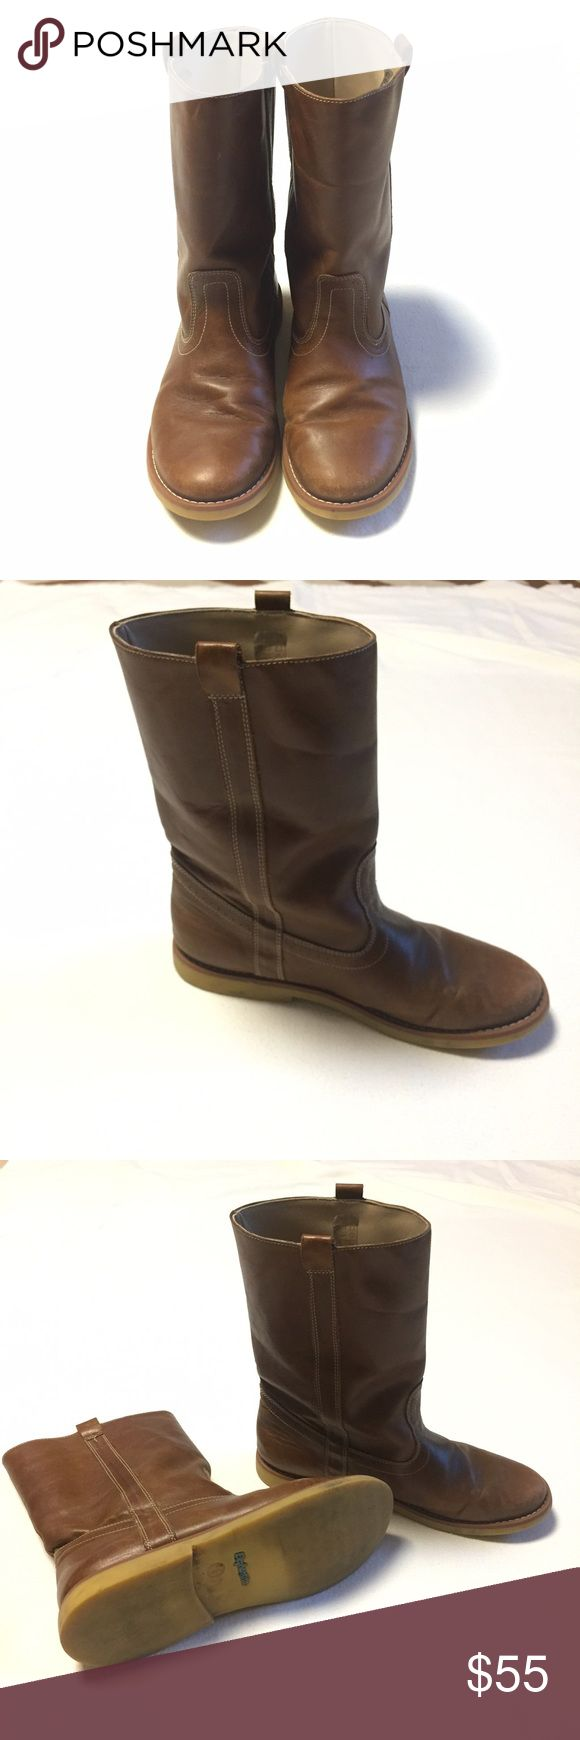 Elephantito Leather Western Boots Big Kids Western inspired boot Side pull tabs for easy on/off Leather upper, rubber sole Imported Size 4 Big Kids Excellent condition, with some very minor surface scuffs Super soft leather Retail for $105 Light brown color Elephantito Shoes Boots